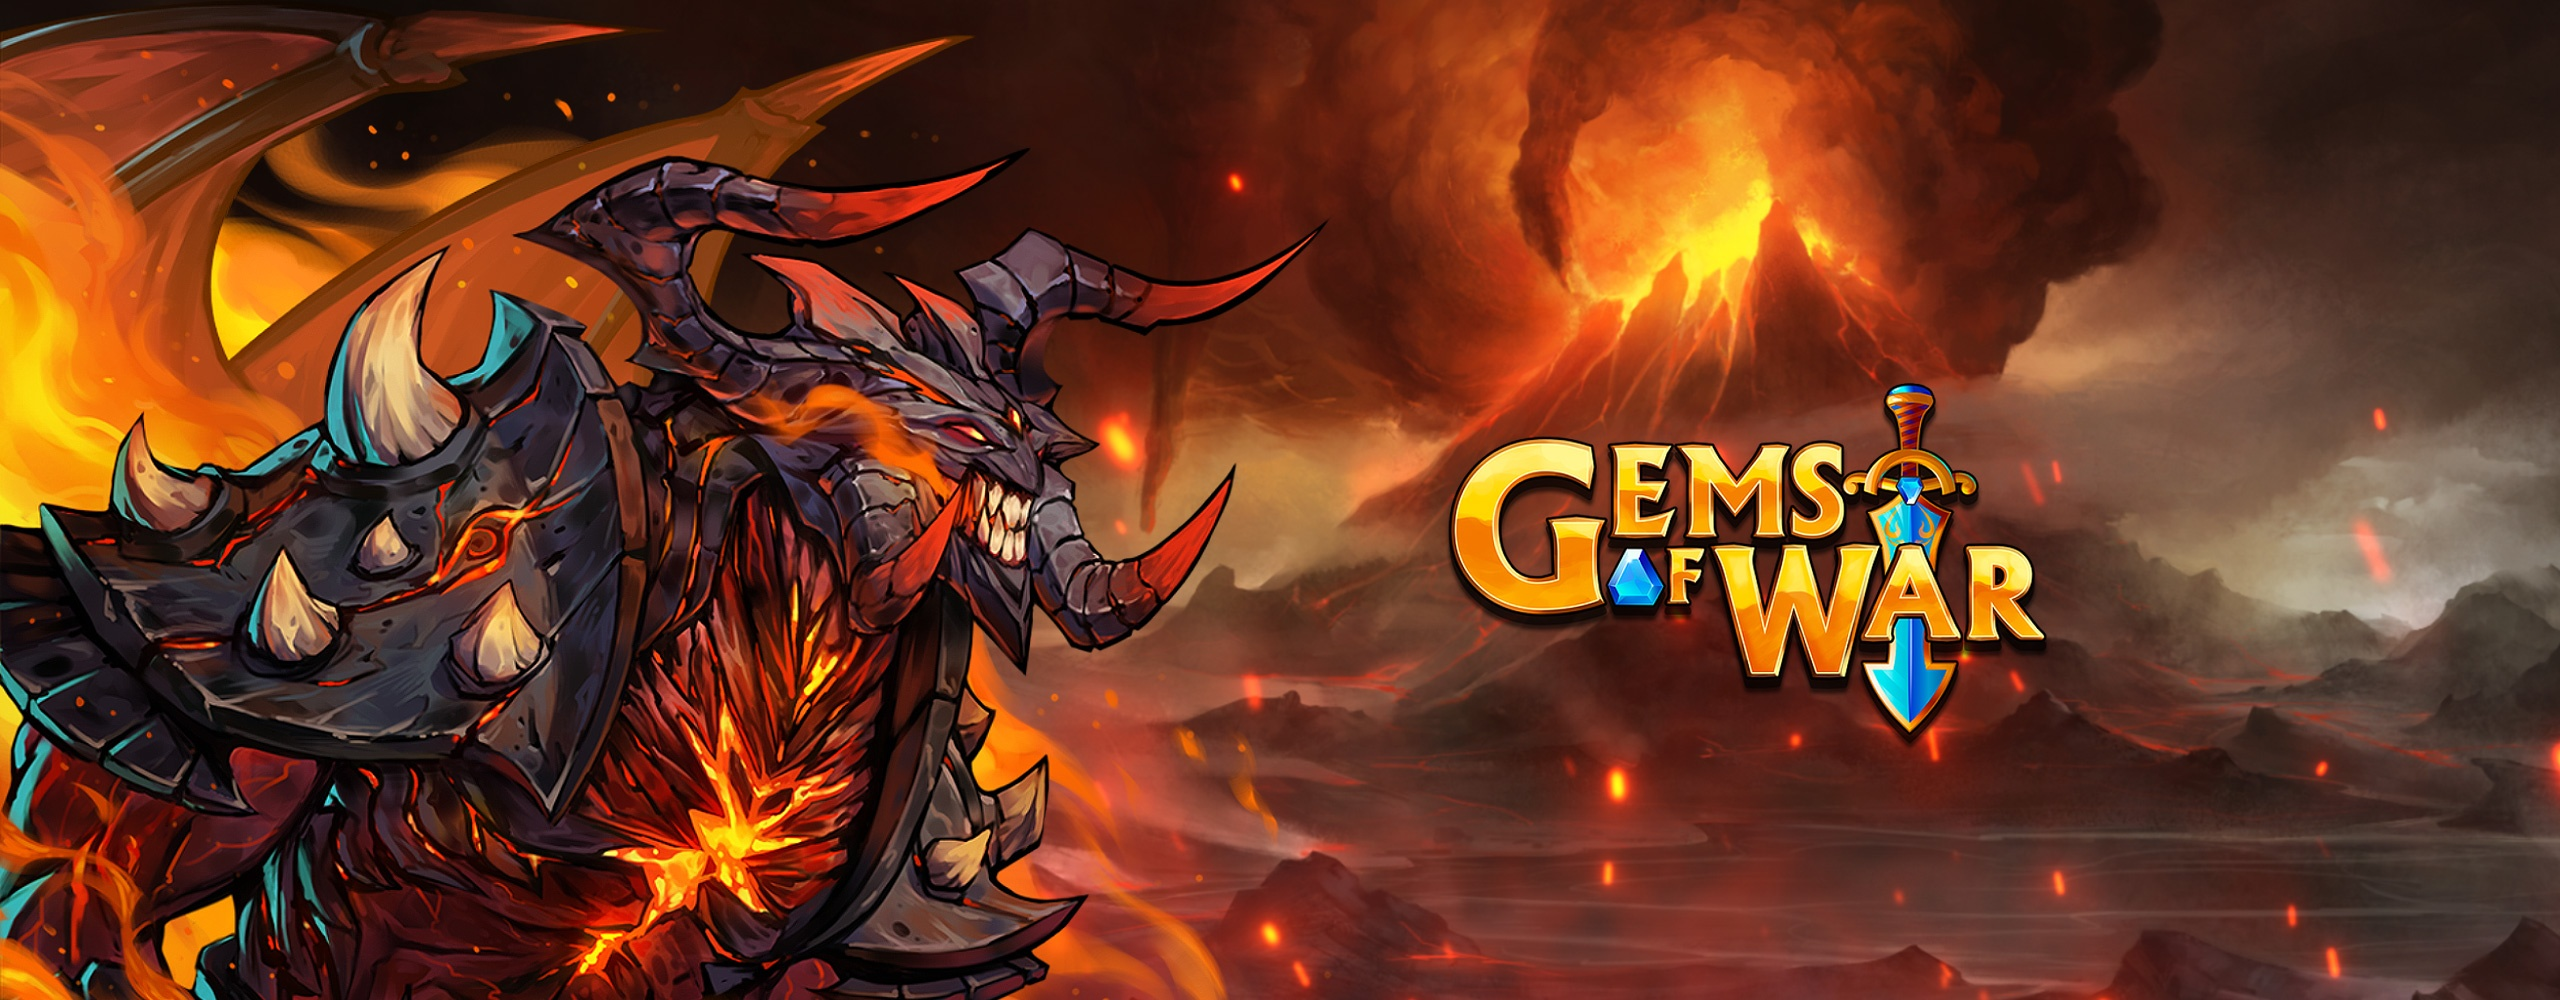 Gems of War gets its biggest update of the year!